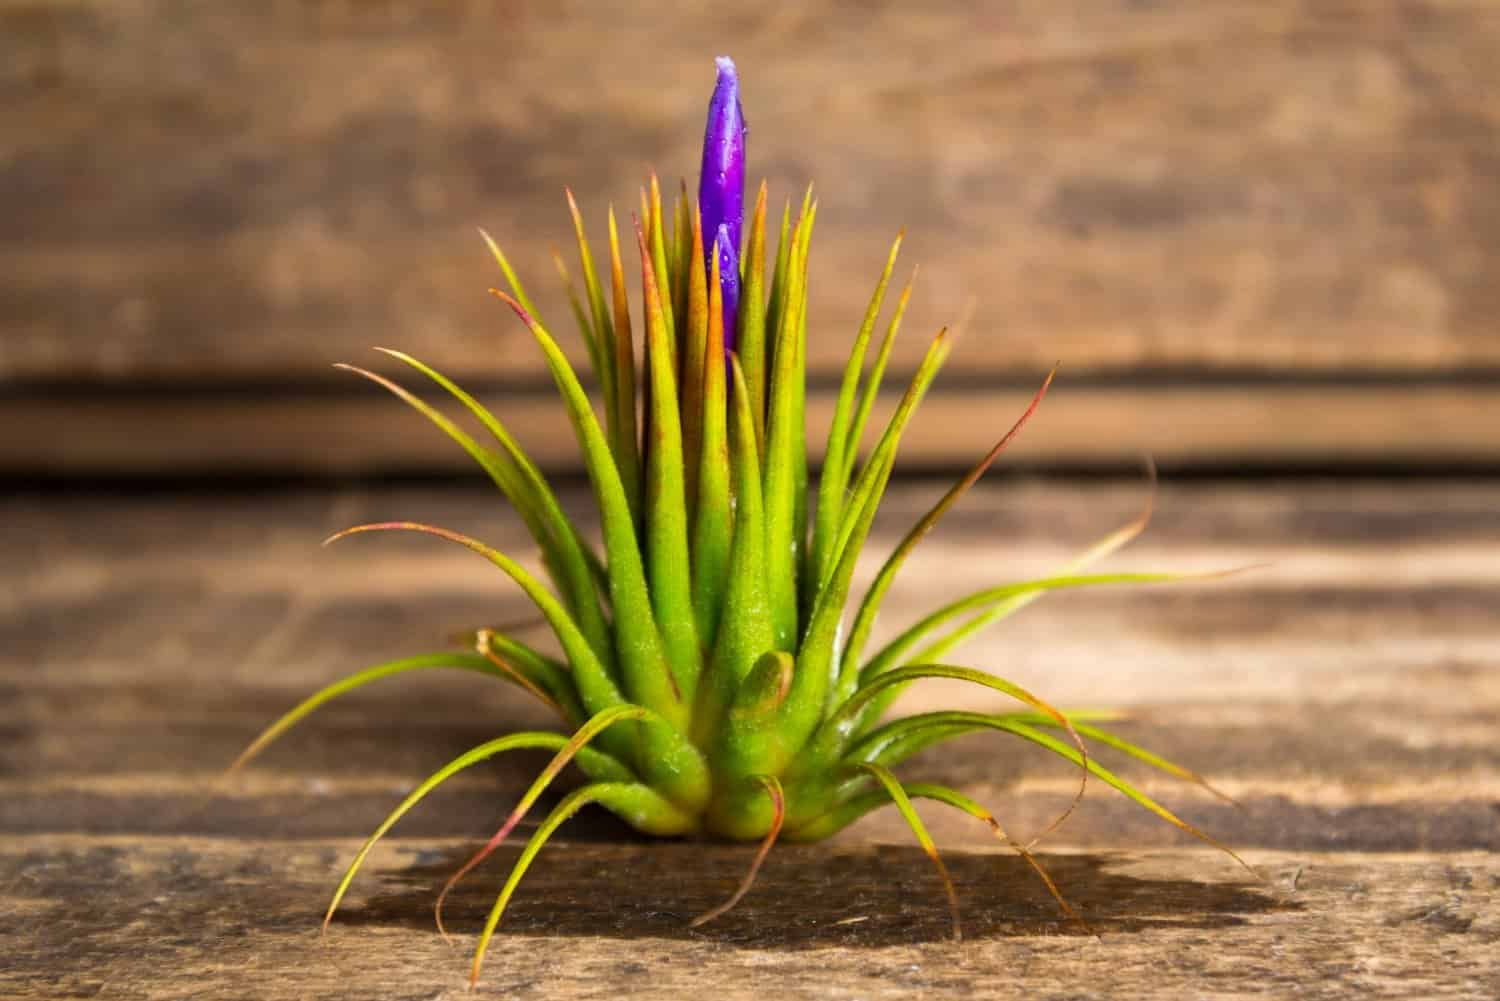 Hinterland Trading Air Plant Tillandsia Bromeliads Teardrop Terrarium Kit Indoor